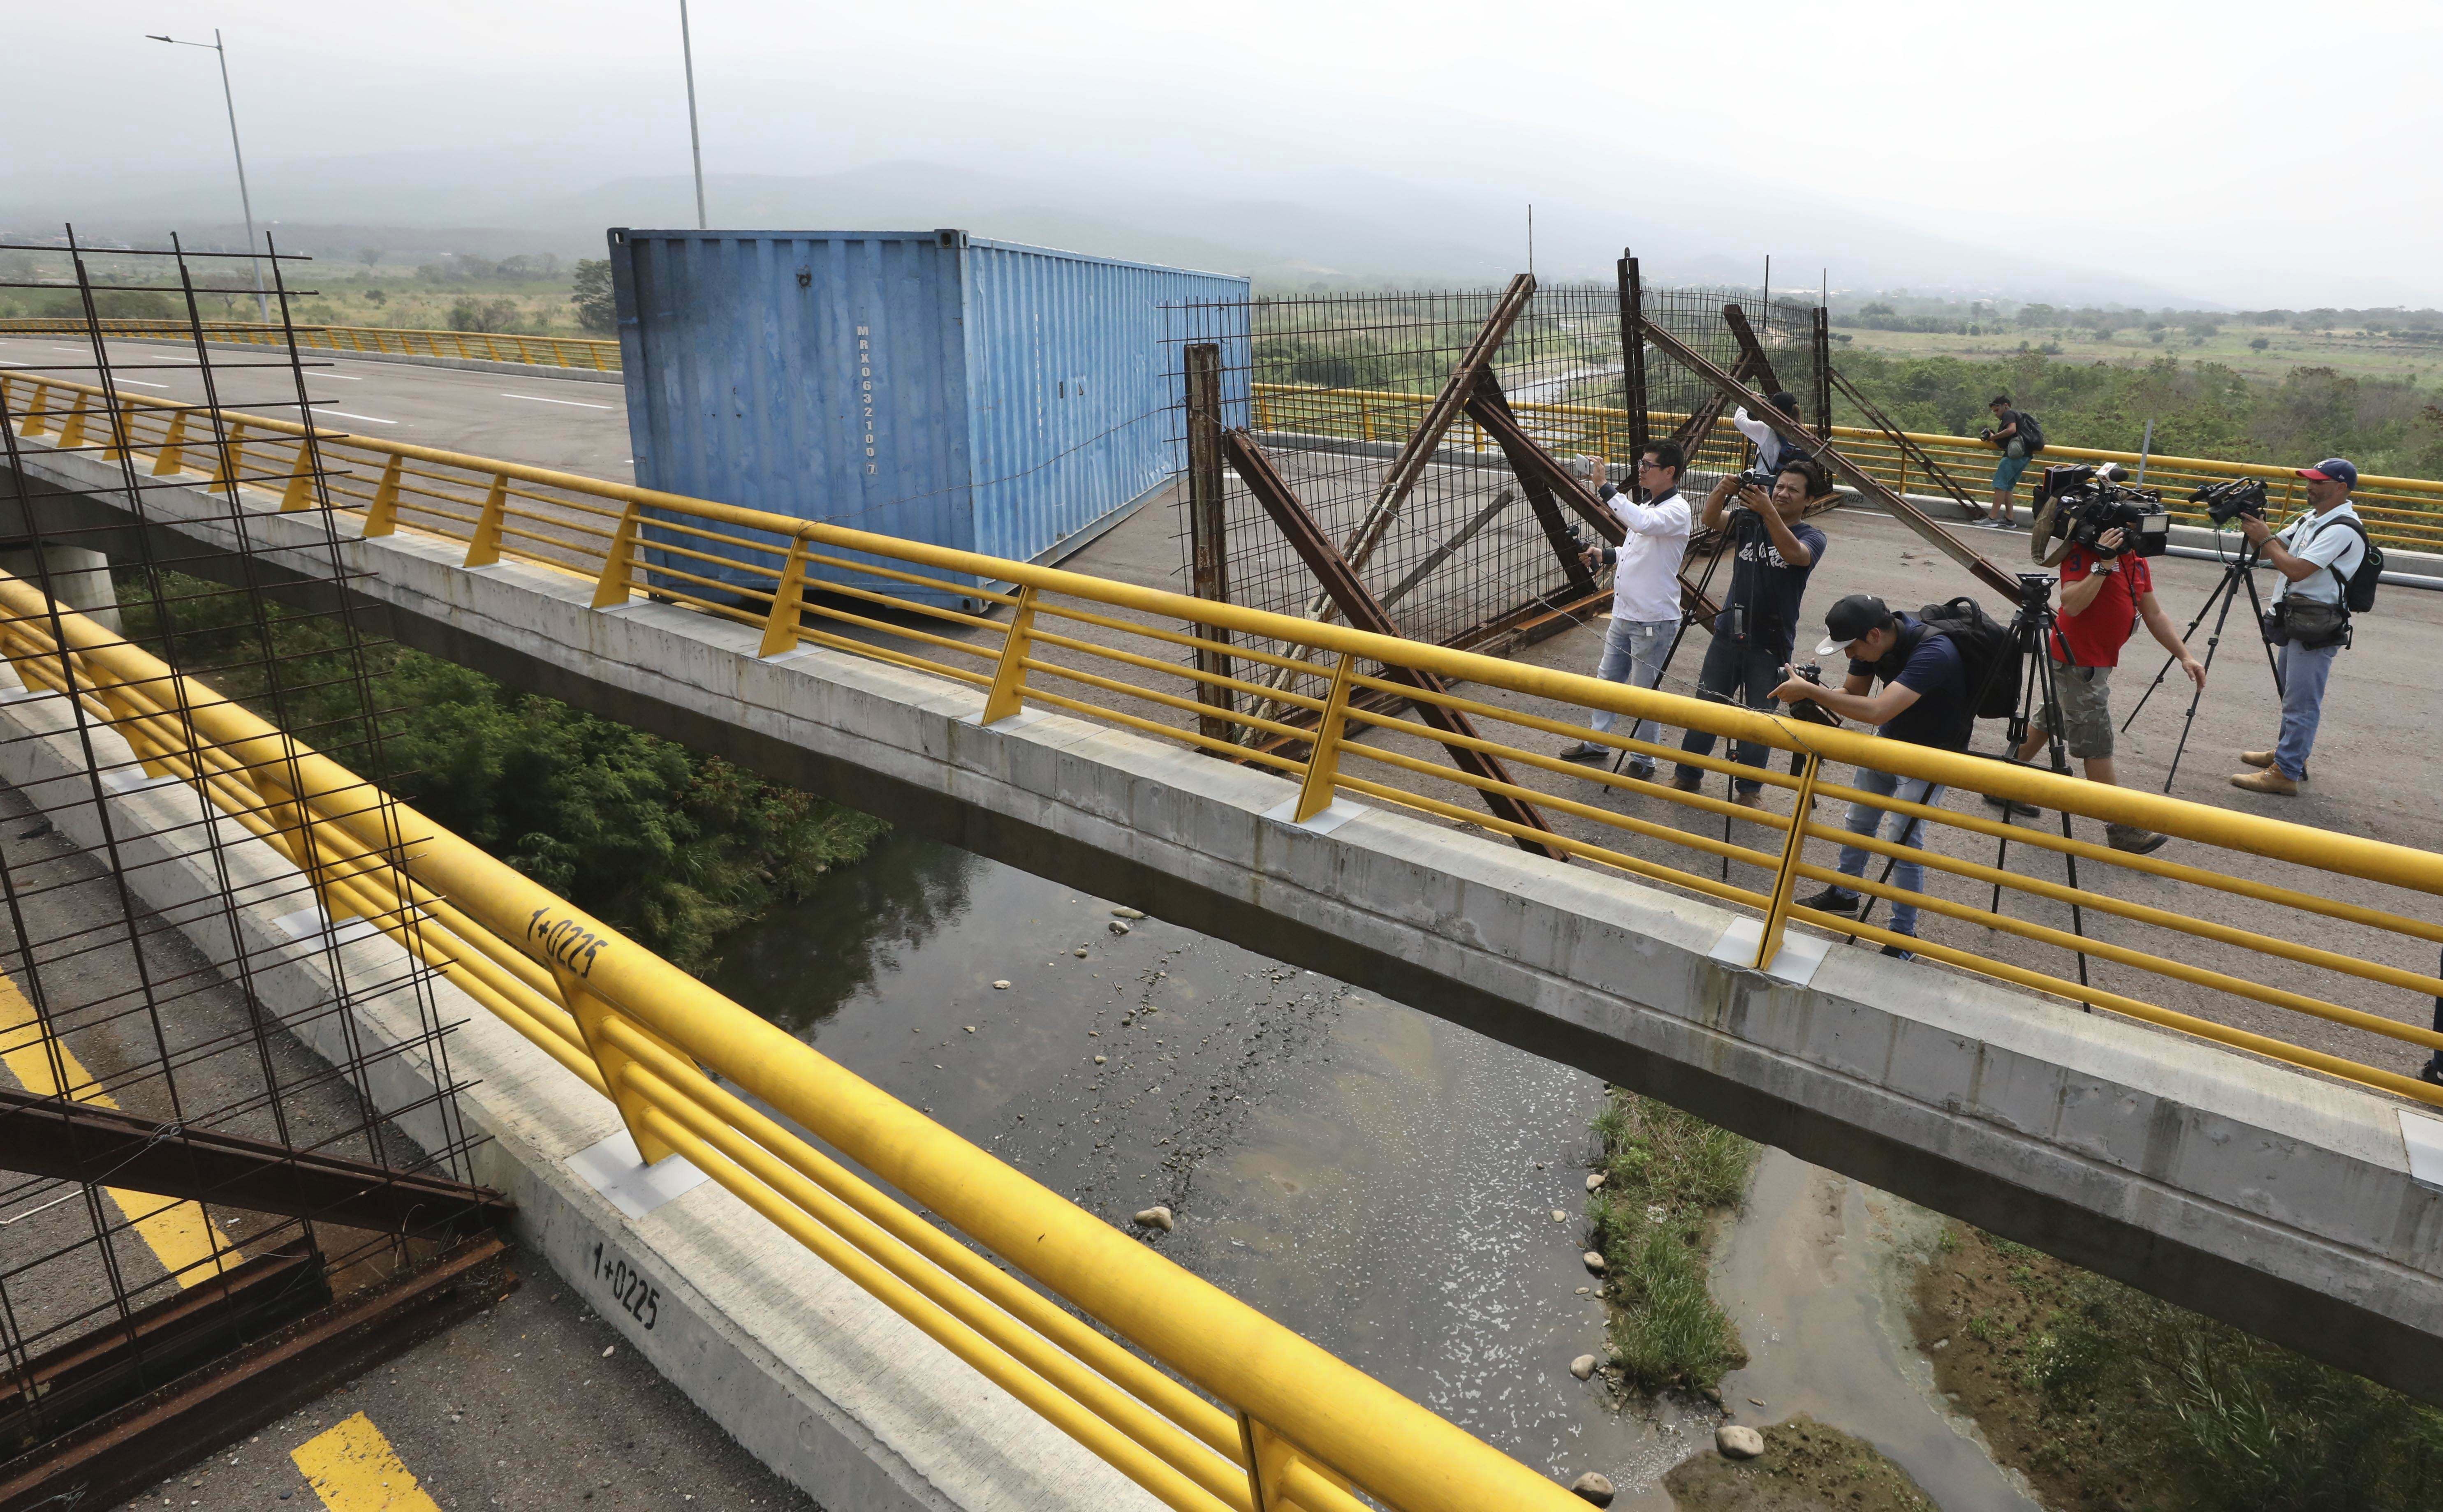 Journalists record a fuel tanker, cargo trailers and makeshift fencing, used as barricades by Venezuelan authorities attempting to block humanitarian aid entering from Colombia on the Tienditas International Bridge that links the two countries as seen from the outskirts of Cucuta, Colombia, Wednesday, Feb. 6, 2019. Immigration authorities say the Venezuelan National Guard built the roadblock a day earlier. (AP Photo/Fernando Vergara)